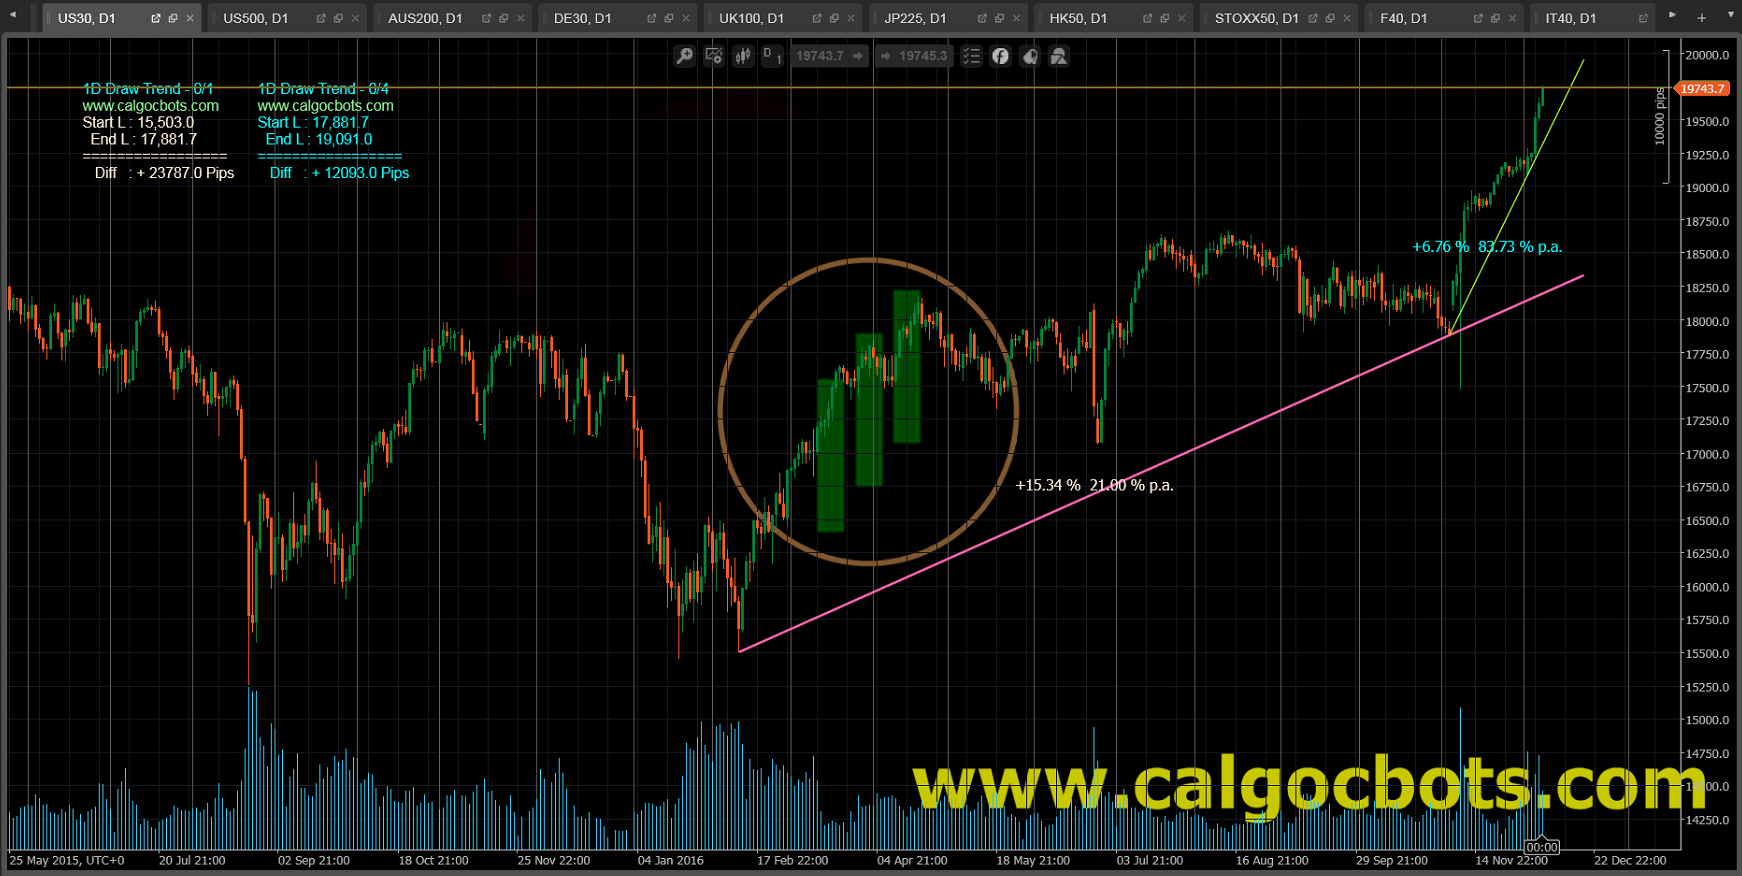 1D Draw Trend Color - cAlgo and cTrader Indicator - DJ 30 Index Daily Chart - 001